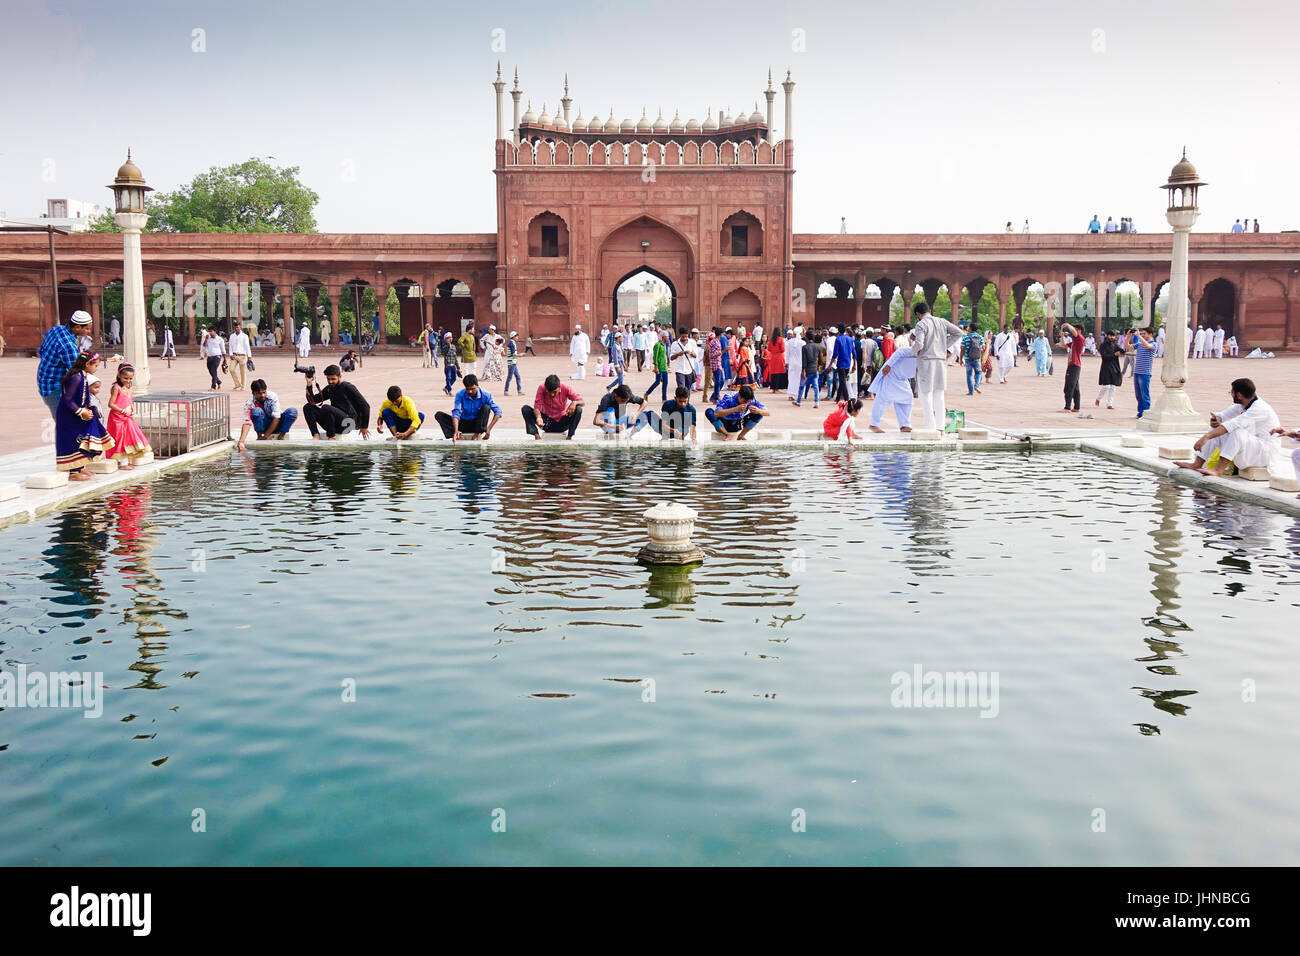 people at symmetrical architecture and holy islamic water pond i.e ablution pond inside jama masjid on occasion - Stock Image